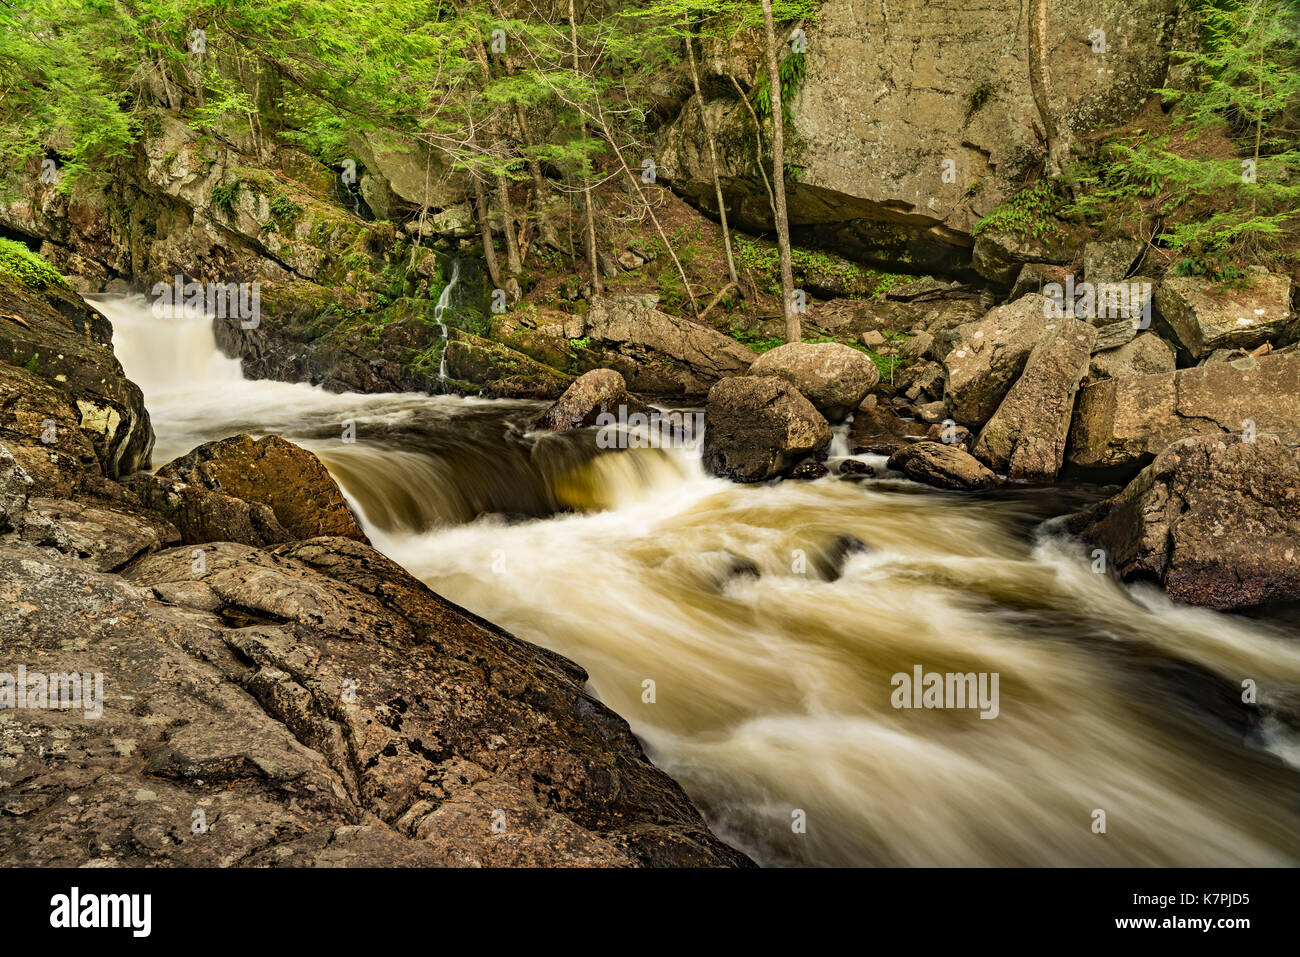 Fast moving rapids on the Sacandaga Riiver as it passes by a narrow gorge, Adirondack Park, Hamilton County, NY - Stock Image